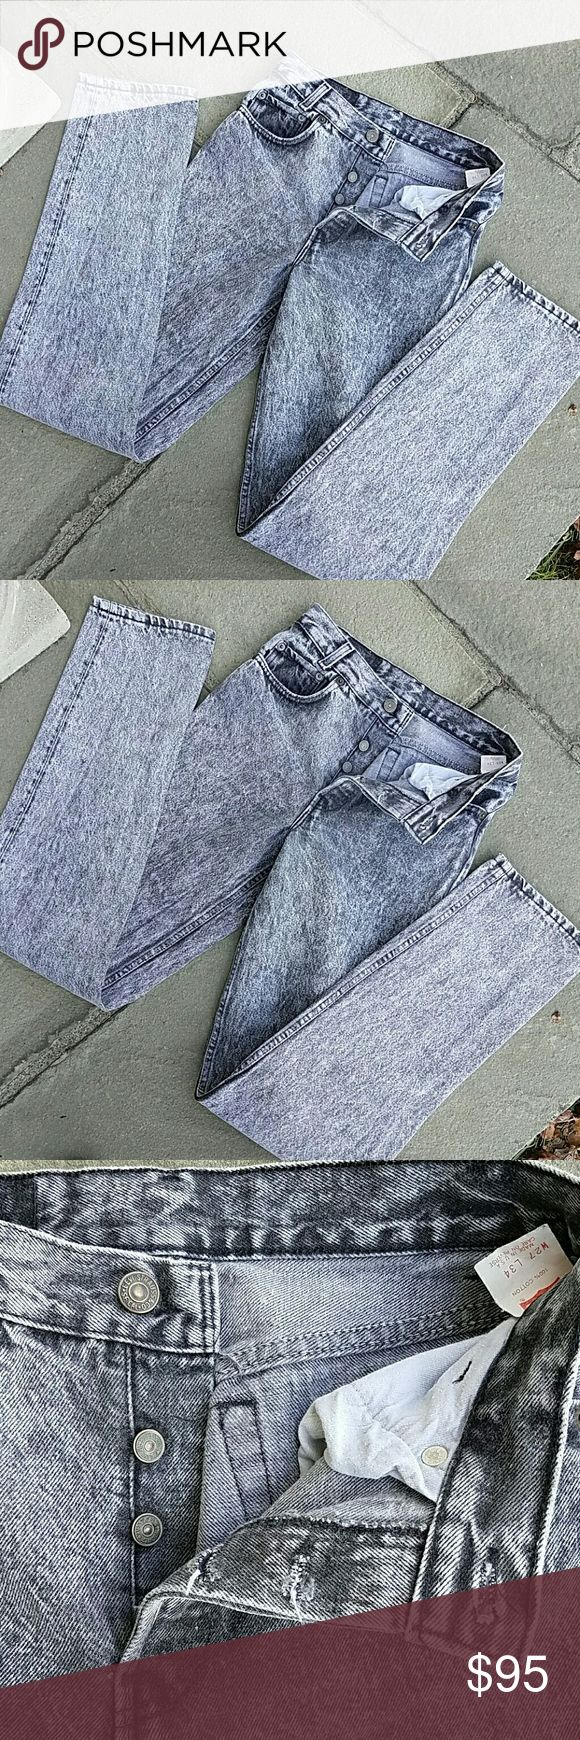 """Levi's 701 501 vintage  acid wash jeans 100 % cotton , made in the USA,  10.5 """" rise, 25"""" waist, 33 """" inseam, labeled27x34 but measure smaller at 25x33 from shrinkage,  grey and white acid washed, rare pair of vintage jeans Levi's Jeans"""